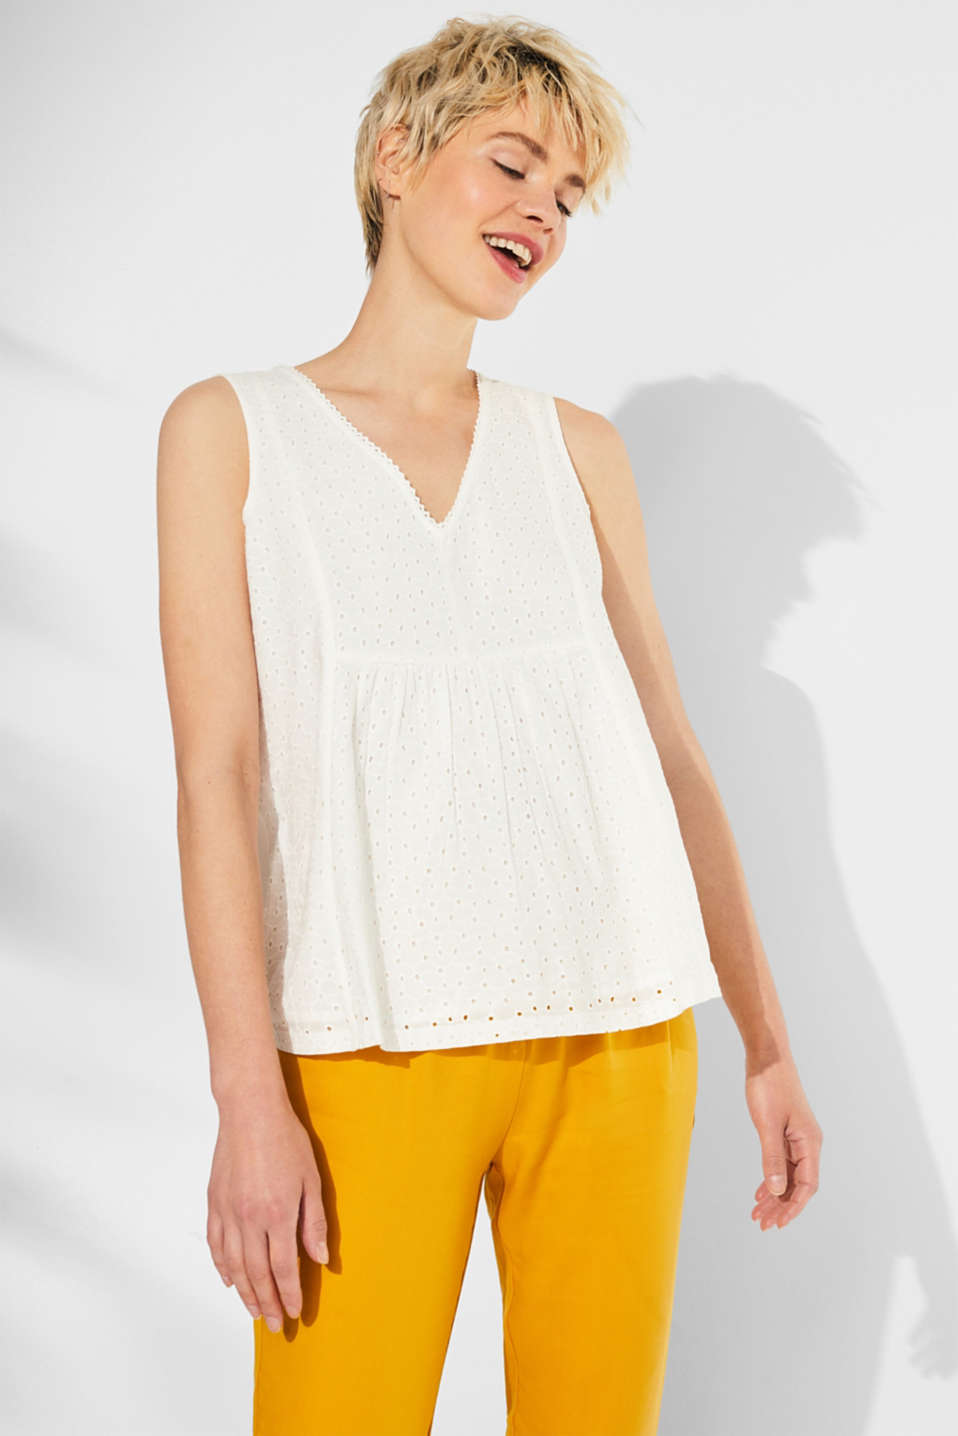 Blouse top with broderie anglaise and a jersey back